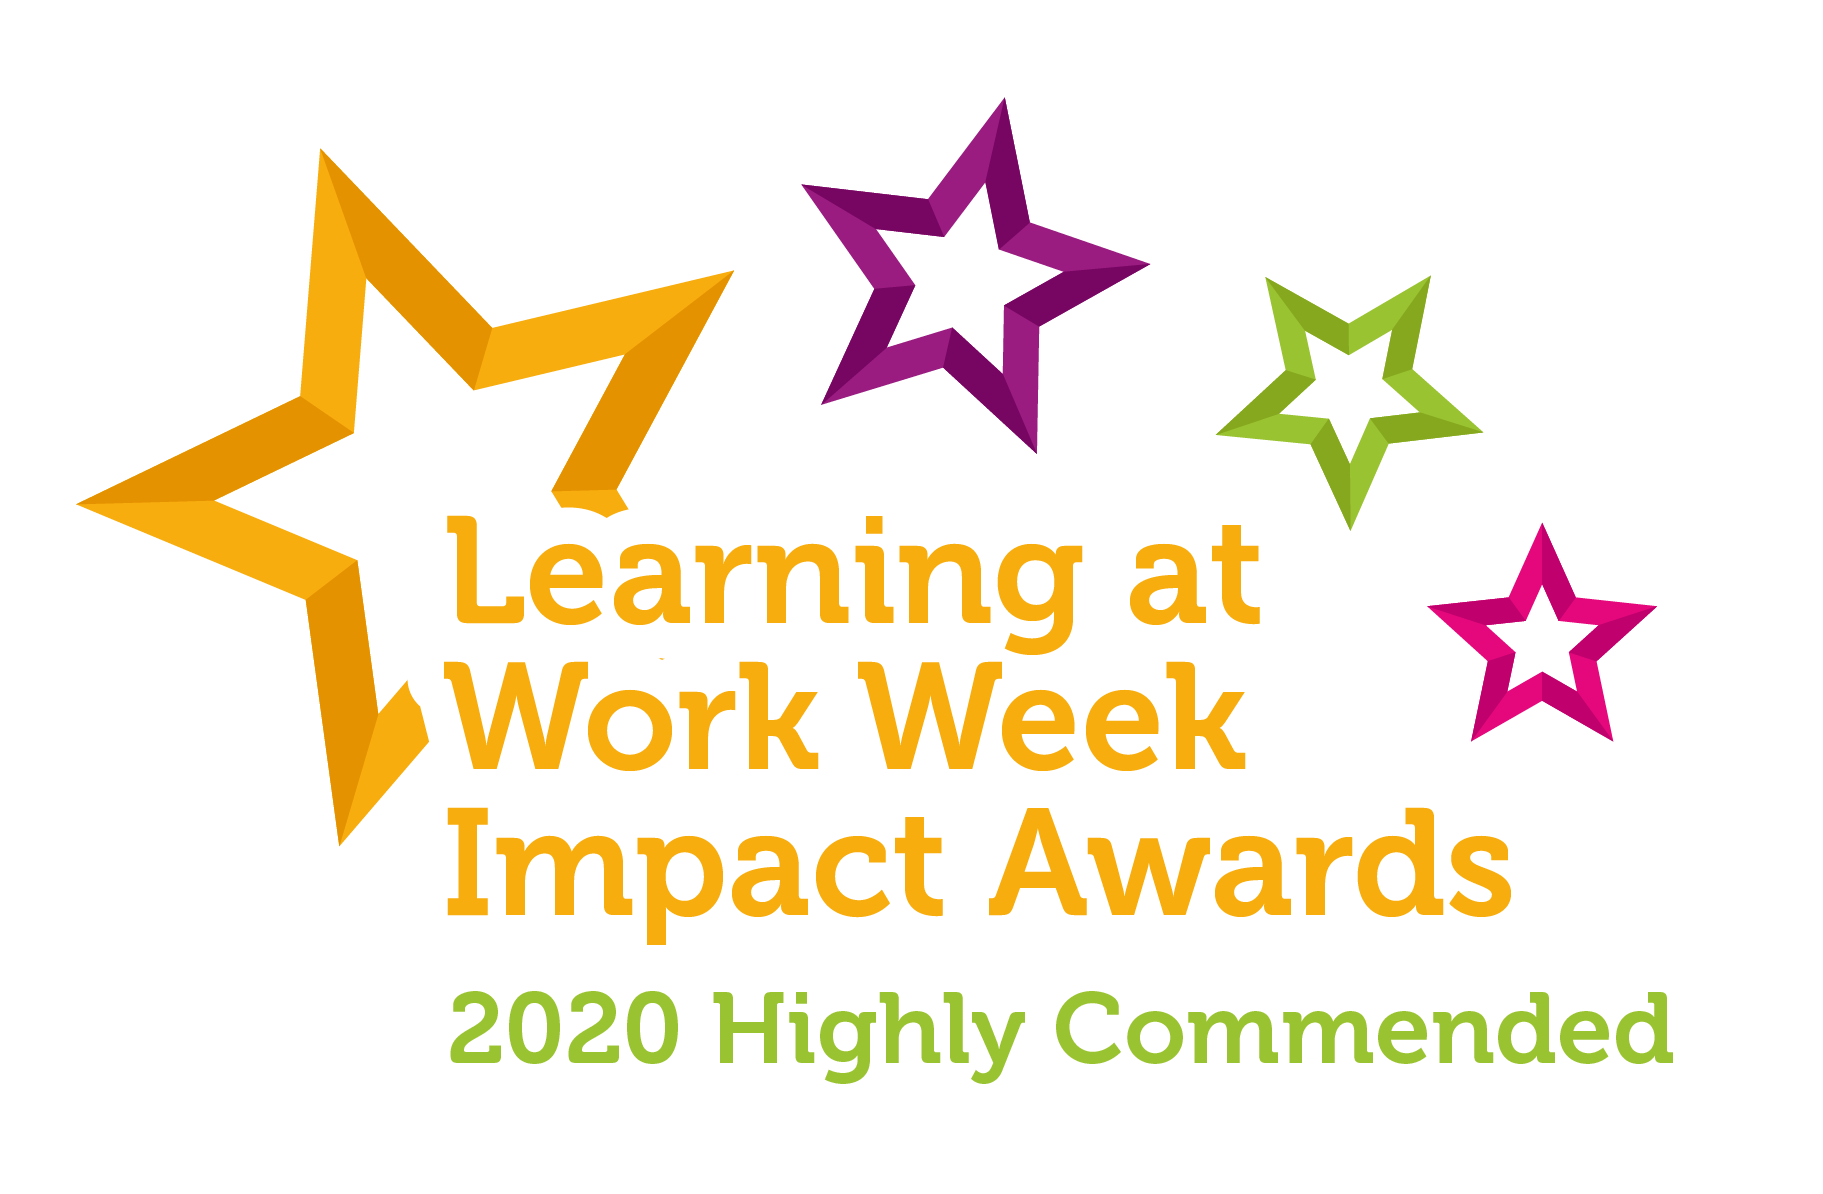 LAWW Impact Awards Highly Commended